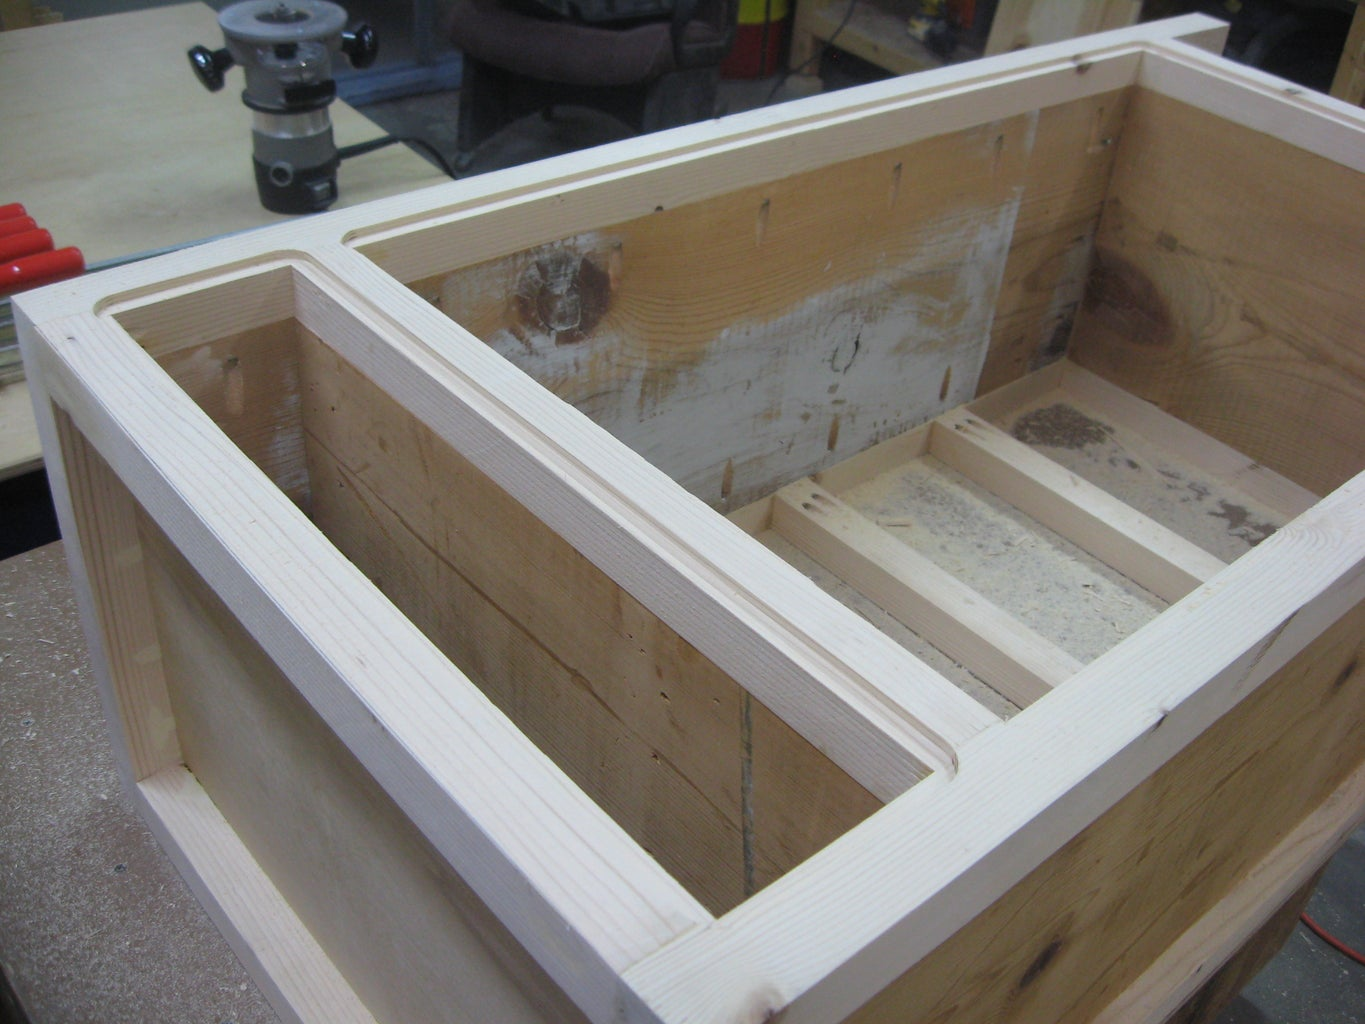 Recessed Areas for Back Panels